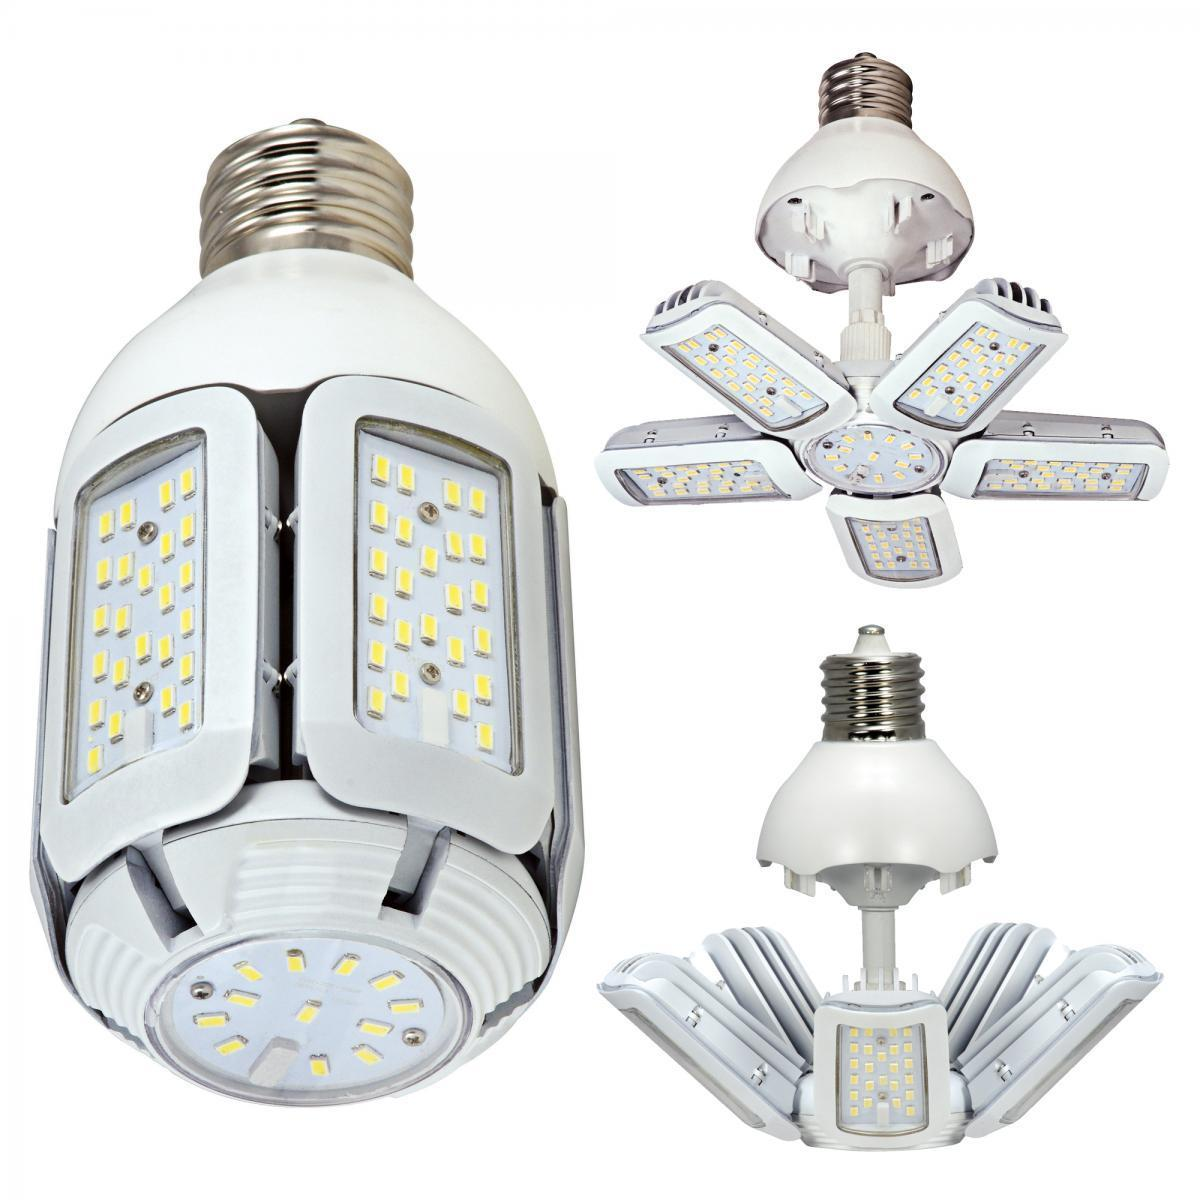 SATCO 60W - LED HID Replacement - 2700K - Mogul Base - Ad...